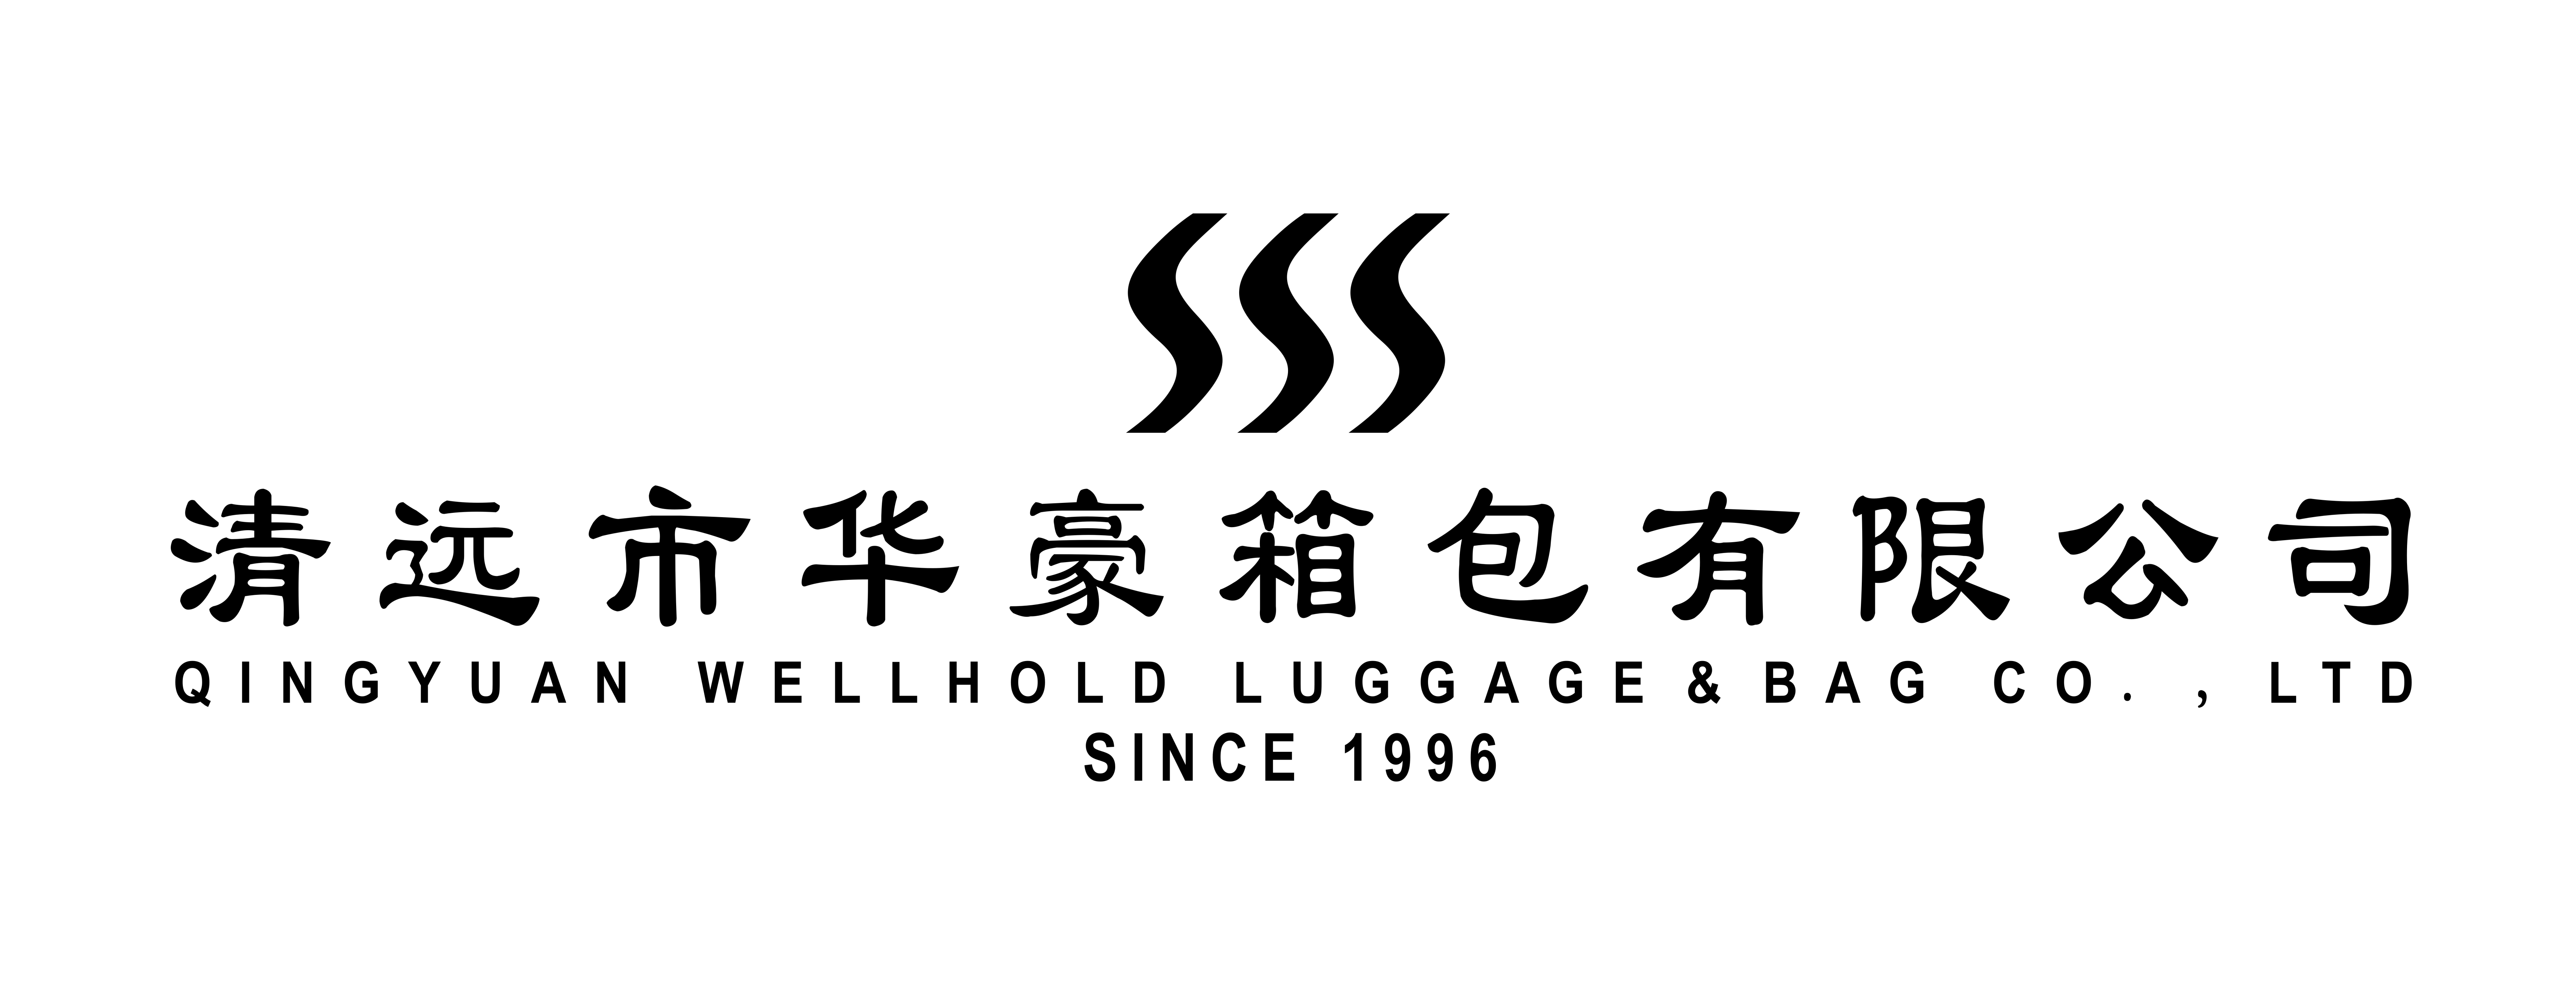 QingyuanwellholdluggageandbagCO,LTD